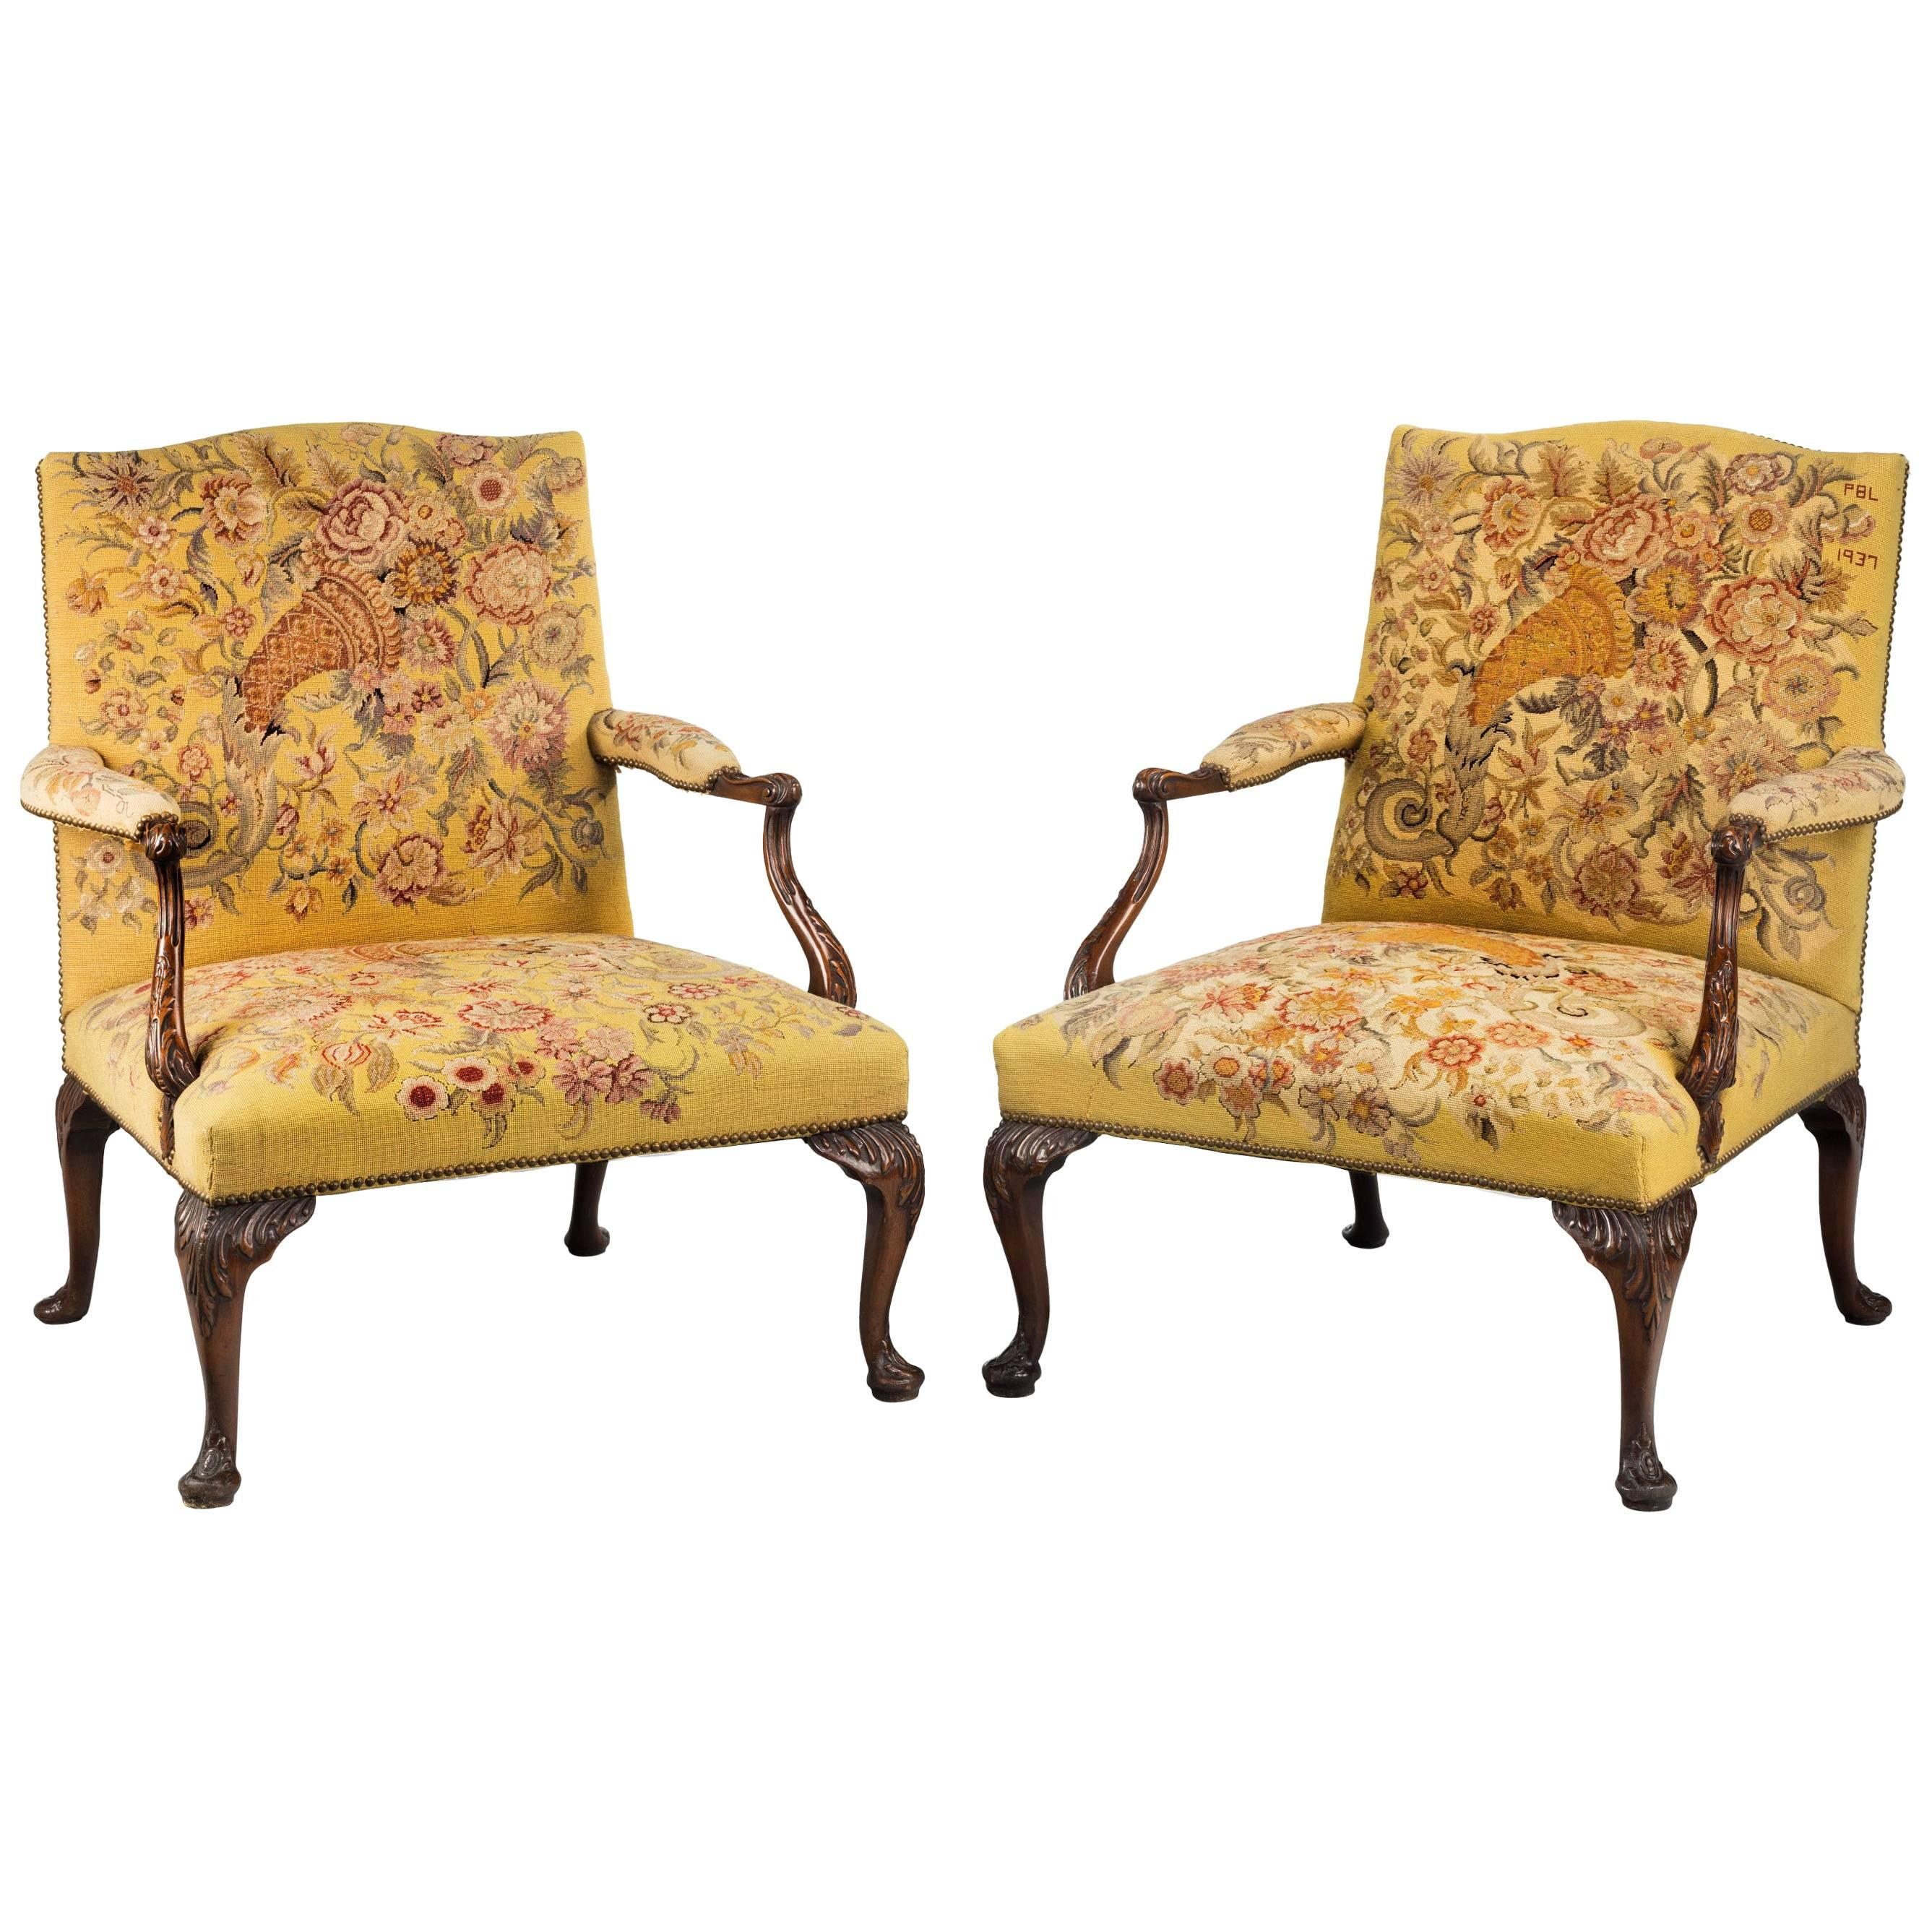 Unusual Pair Of George III Style Mahogany Framed Gainsborough Chairs For  Sale